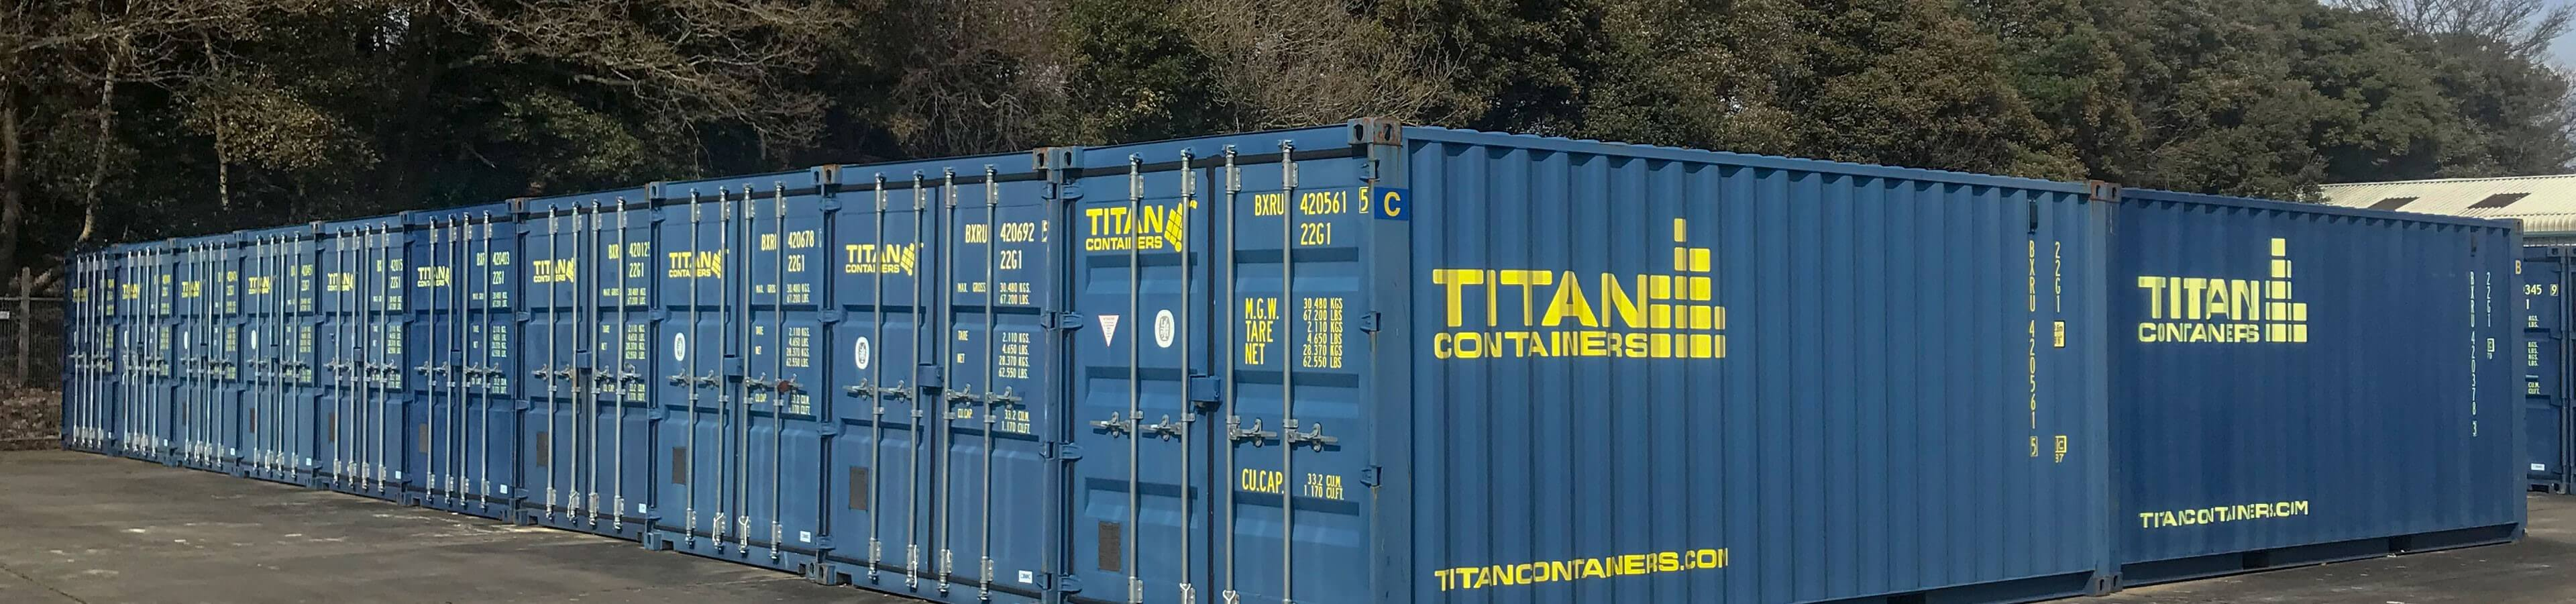 Poole Bouremouth Self Storage header image | TITAN Containers